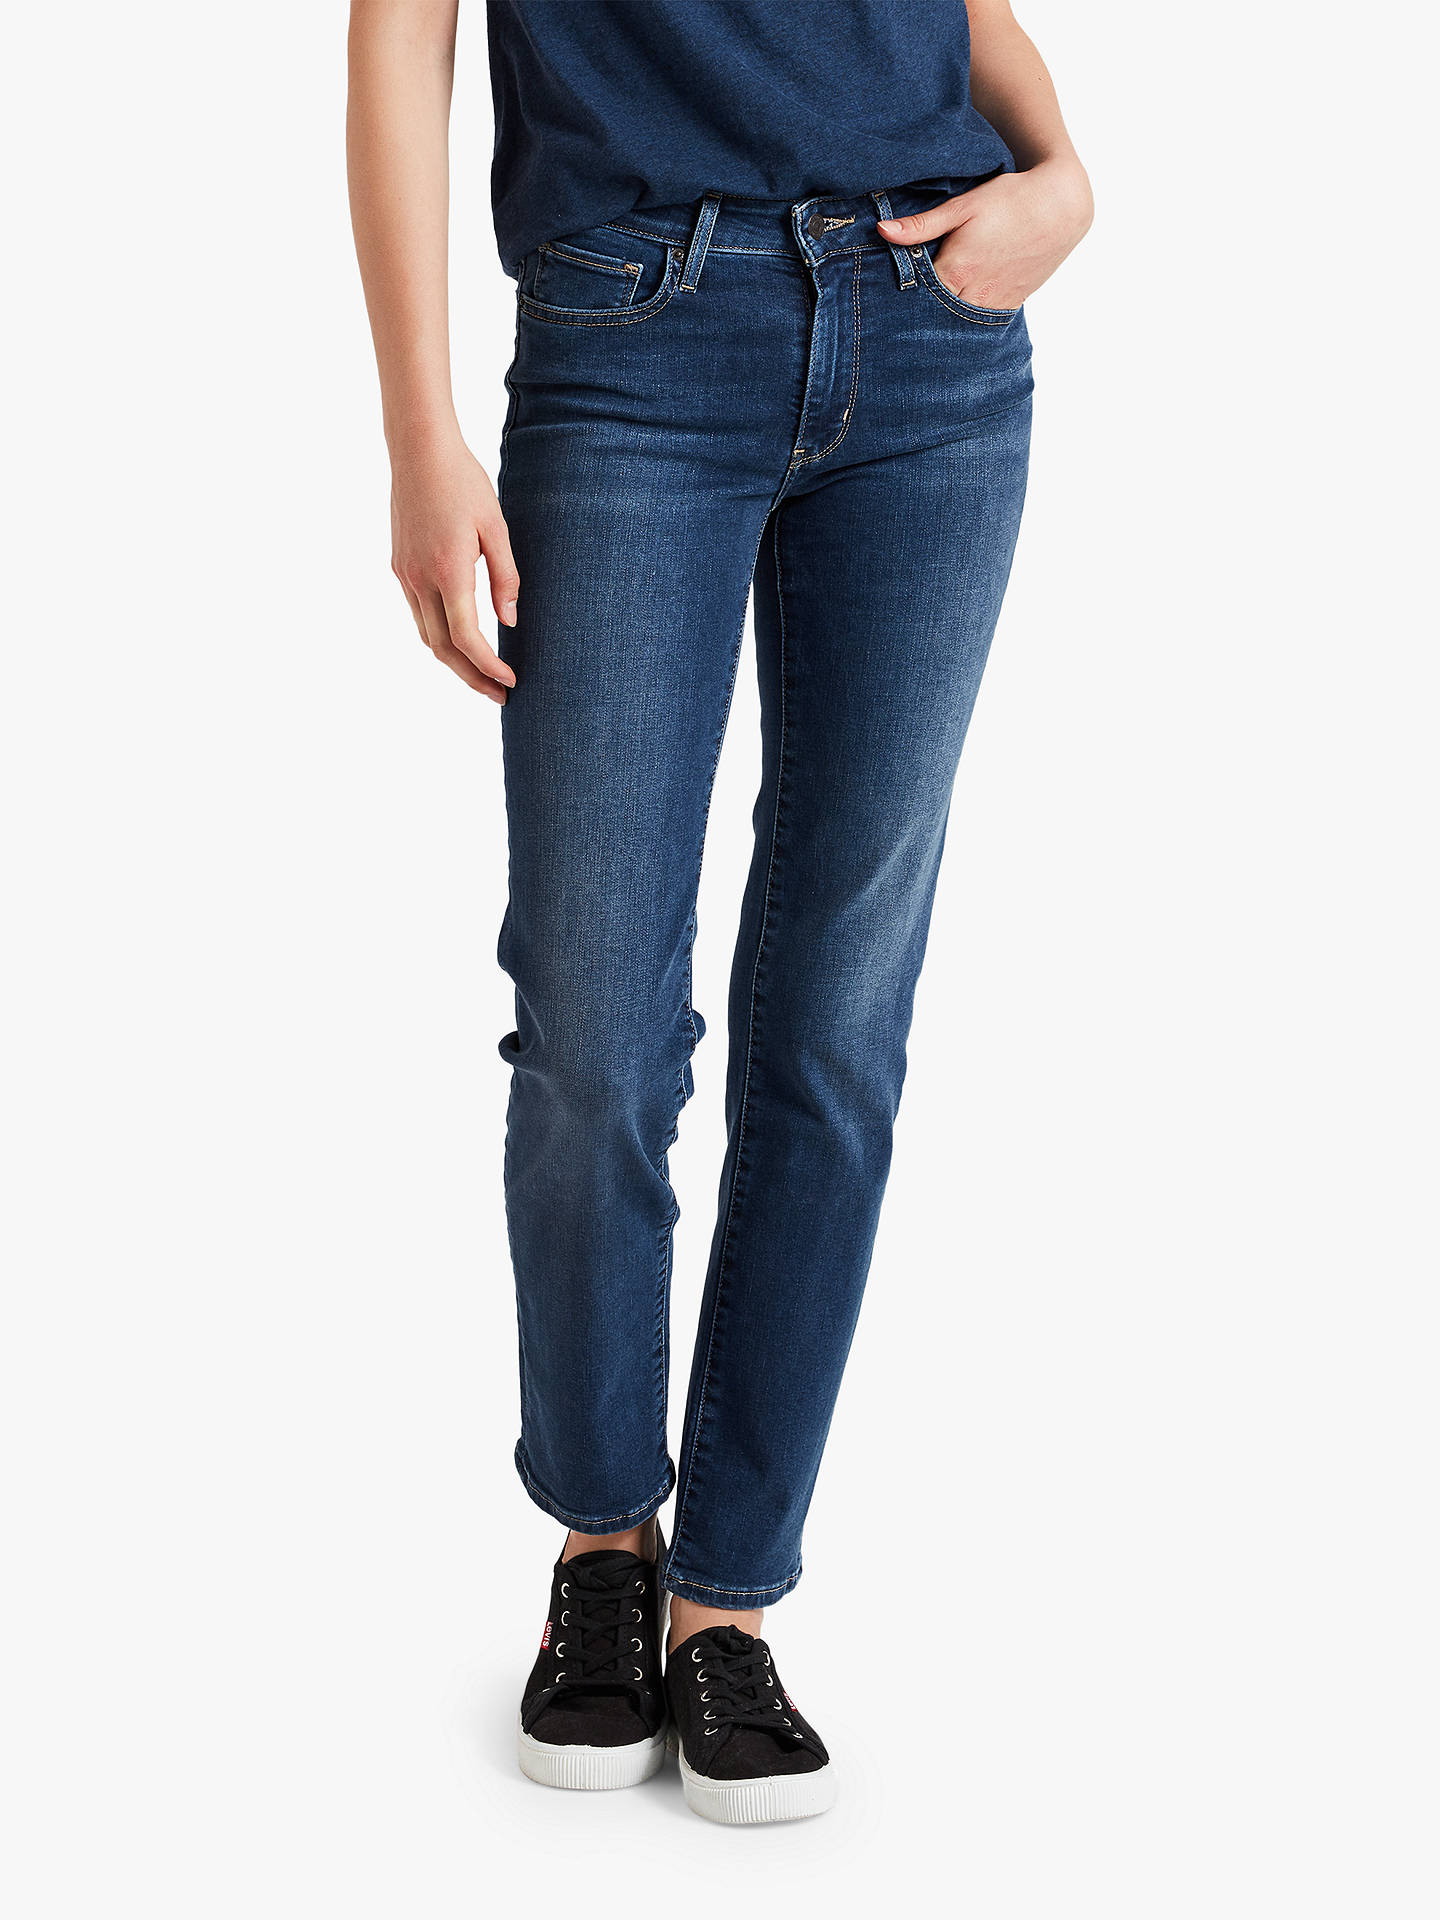 a940e861 Levi's 712 Mid Rise Slim Jeans, Read Between The Lines at John Lewis ...